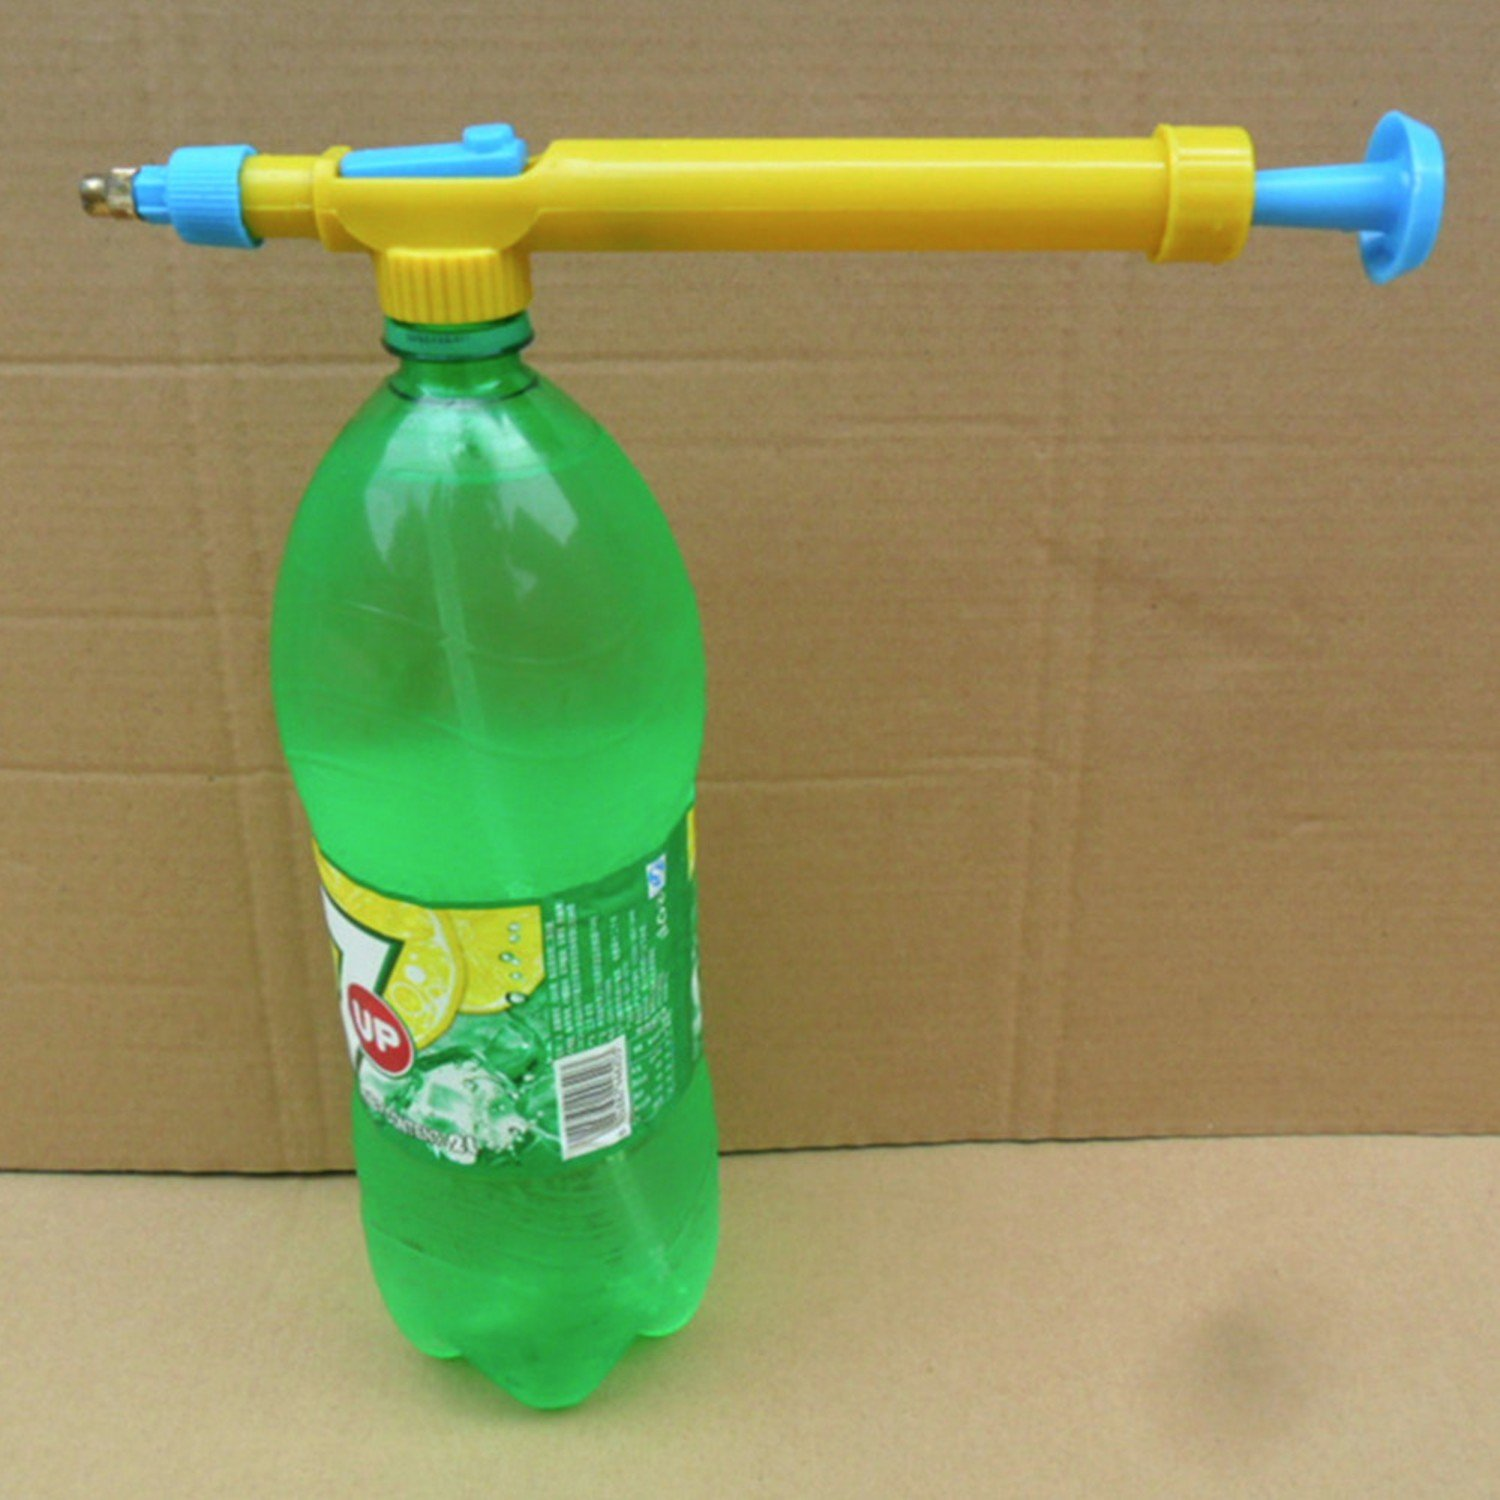 Mini Toy Guns Juice Bottles Interface Plastic Trolley Gun Sprayer Head Water Pressure Outdoor Fun & Sports CCNN Company